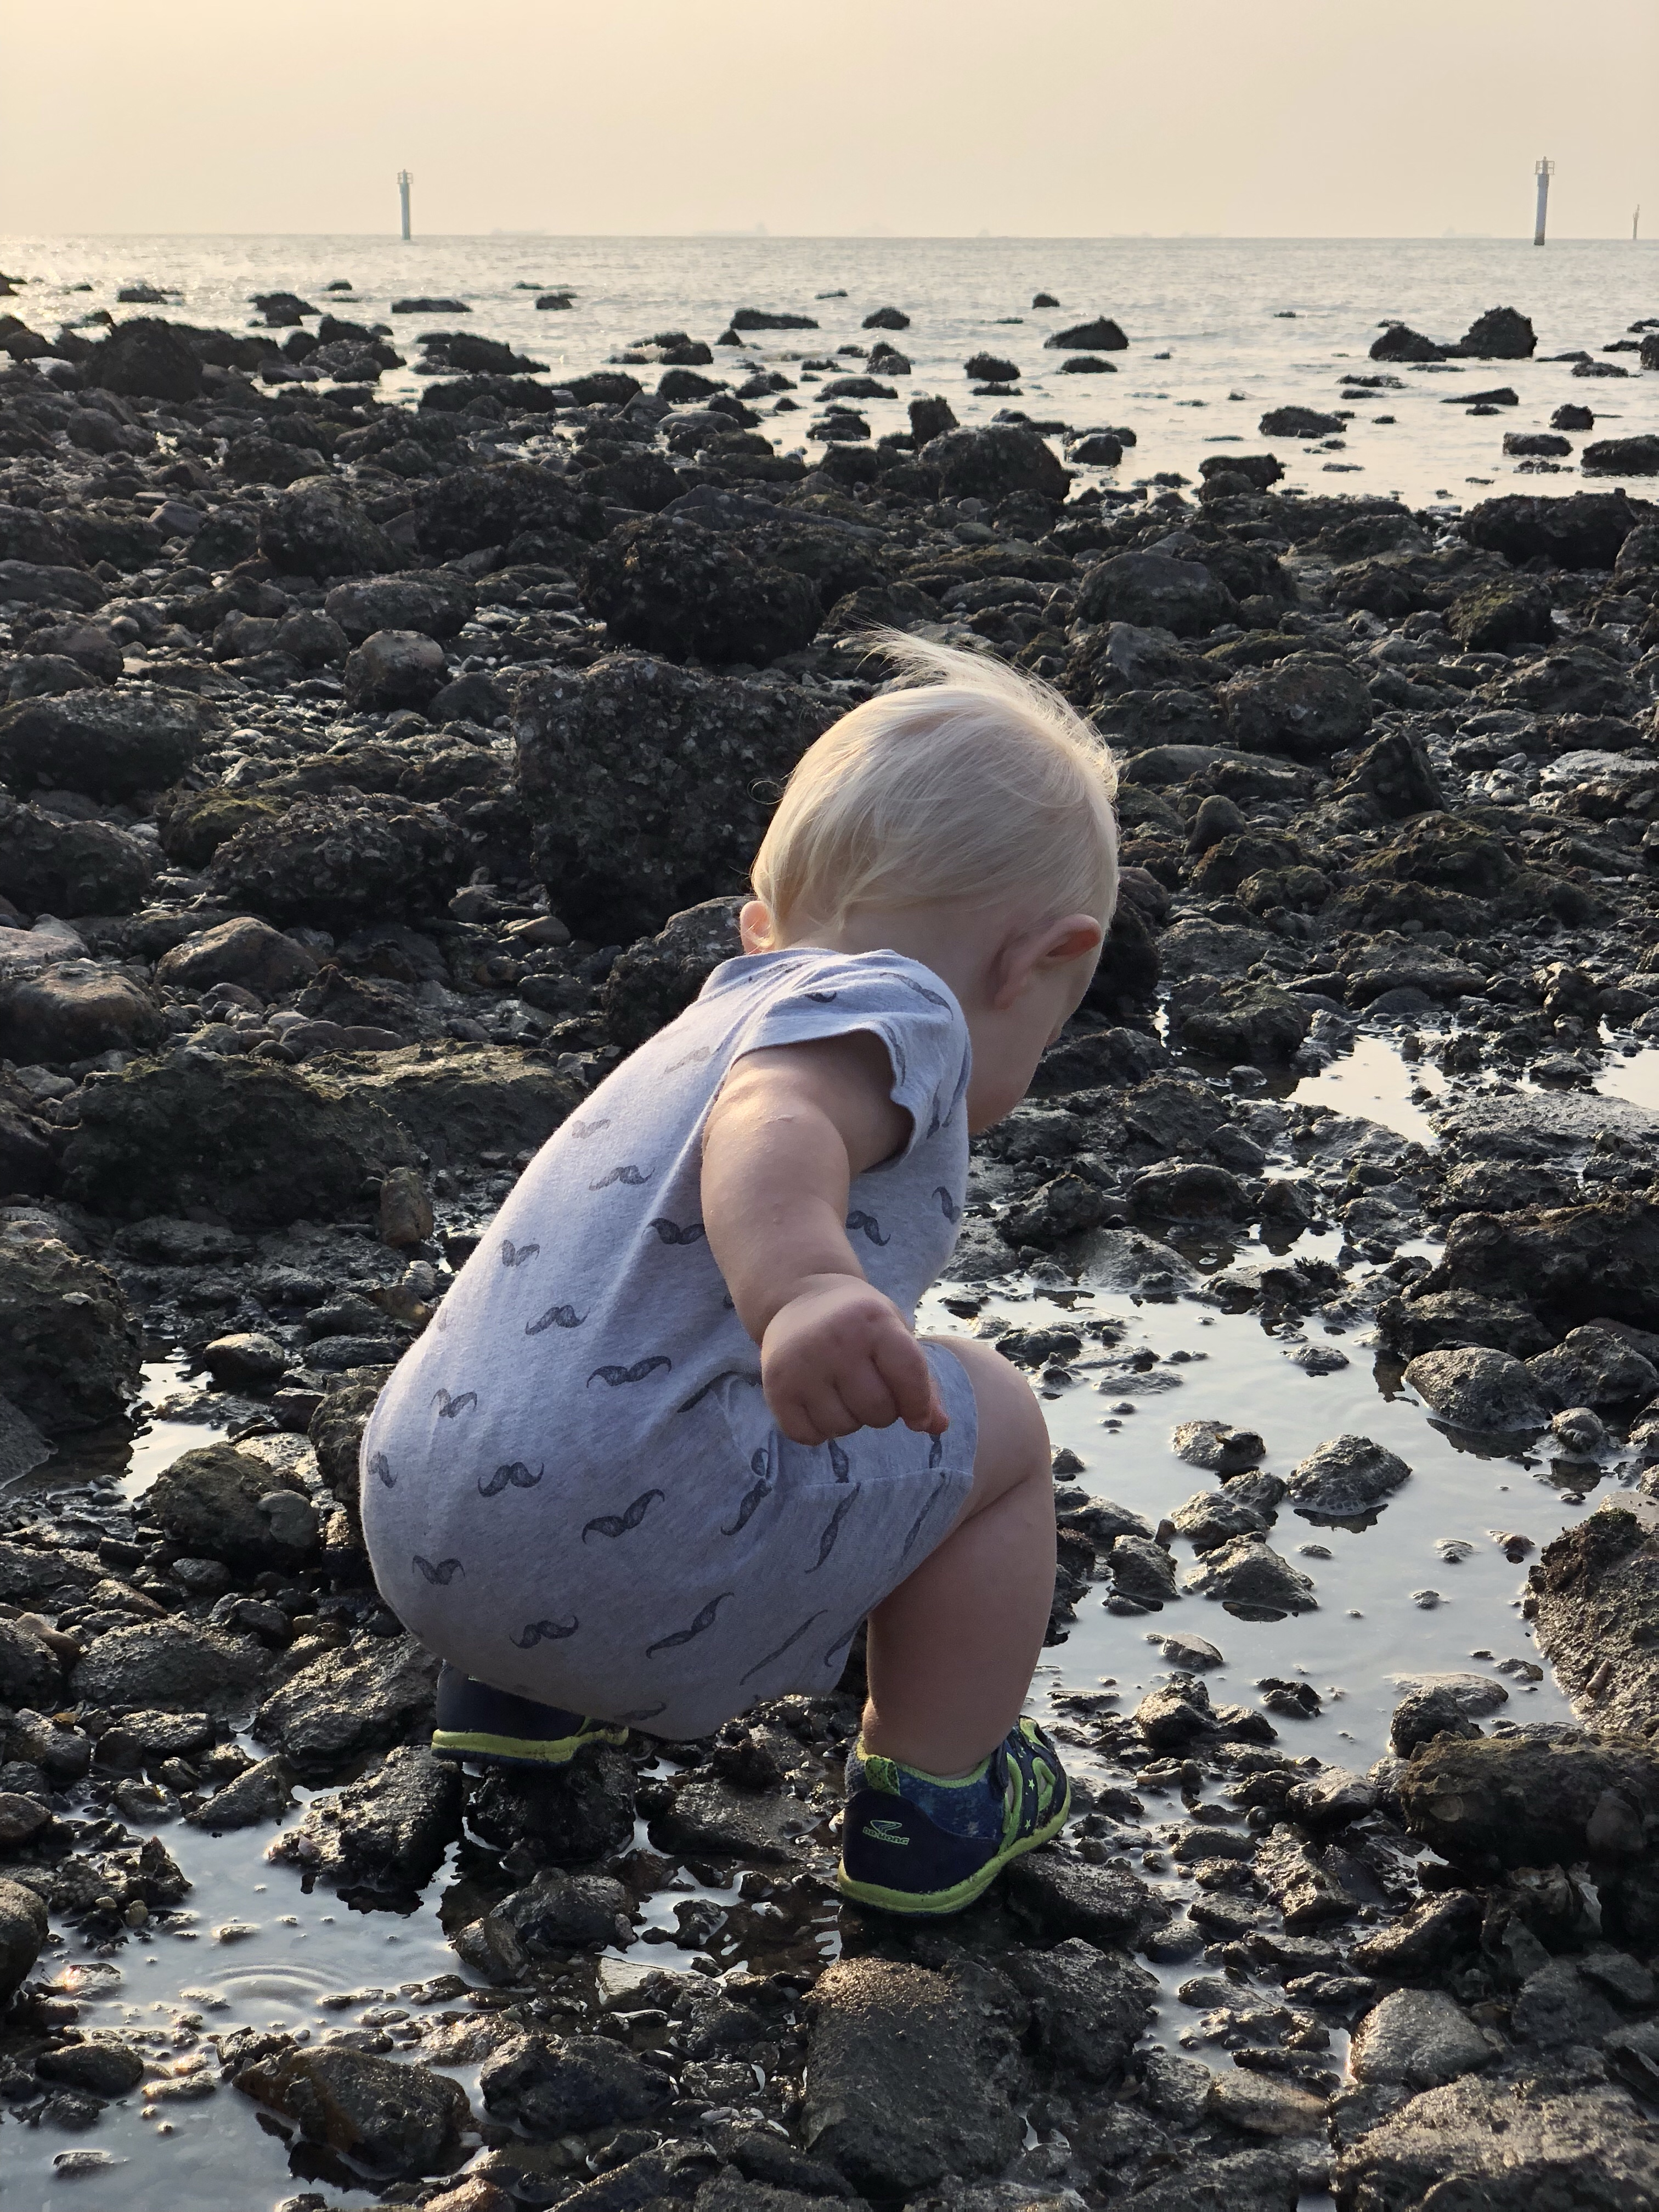 sunset beach at low tide | questions to ask yourself when studying tide pools | tide pools | Hong Kong | children science | teaching resources | Homeschooling | Unschooling | sealife science lessons | This Indulgent Life